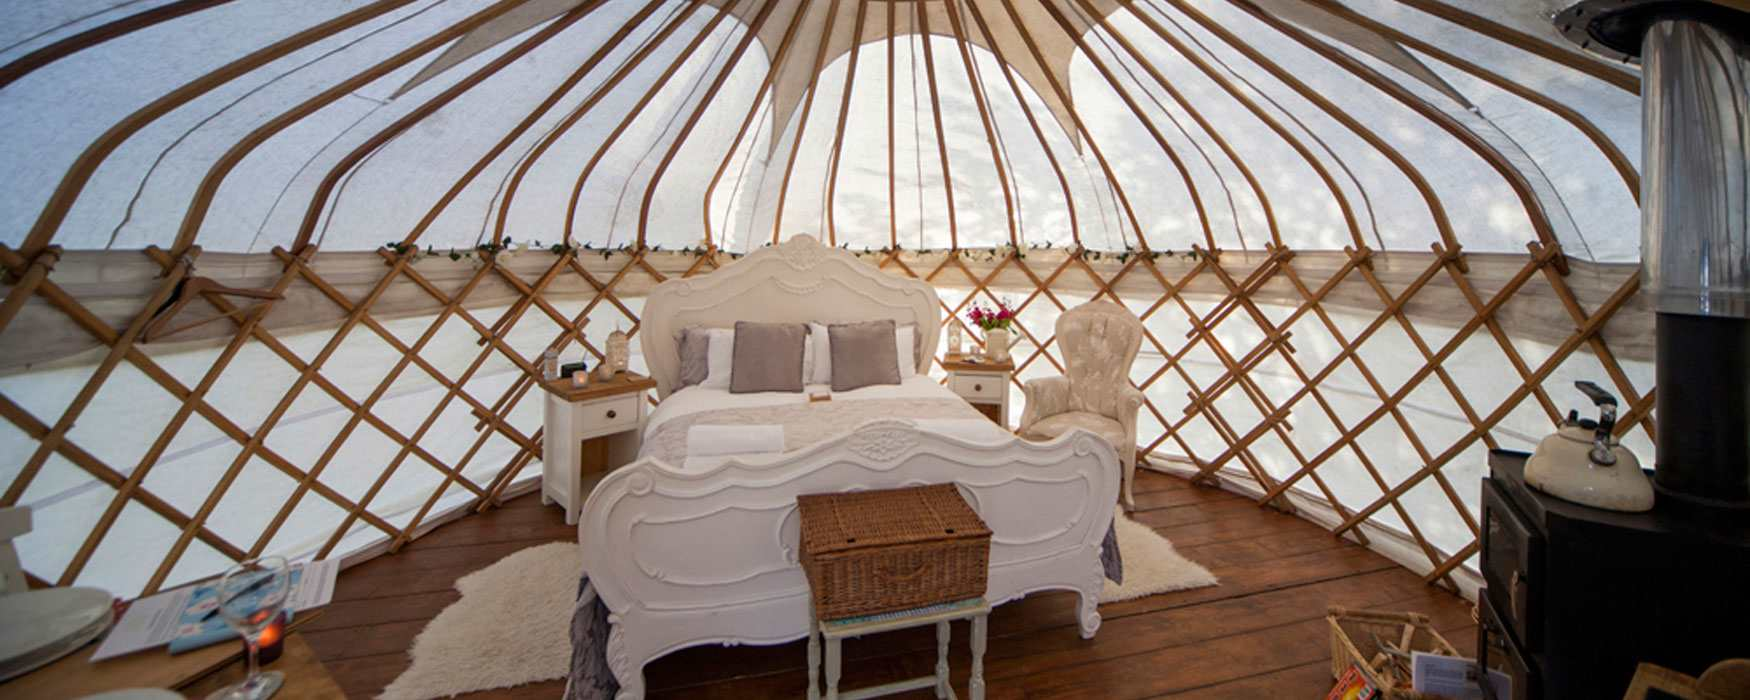 Glamping in luxurious traditional yurts